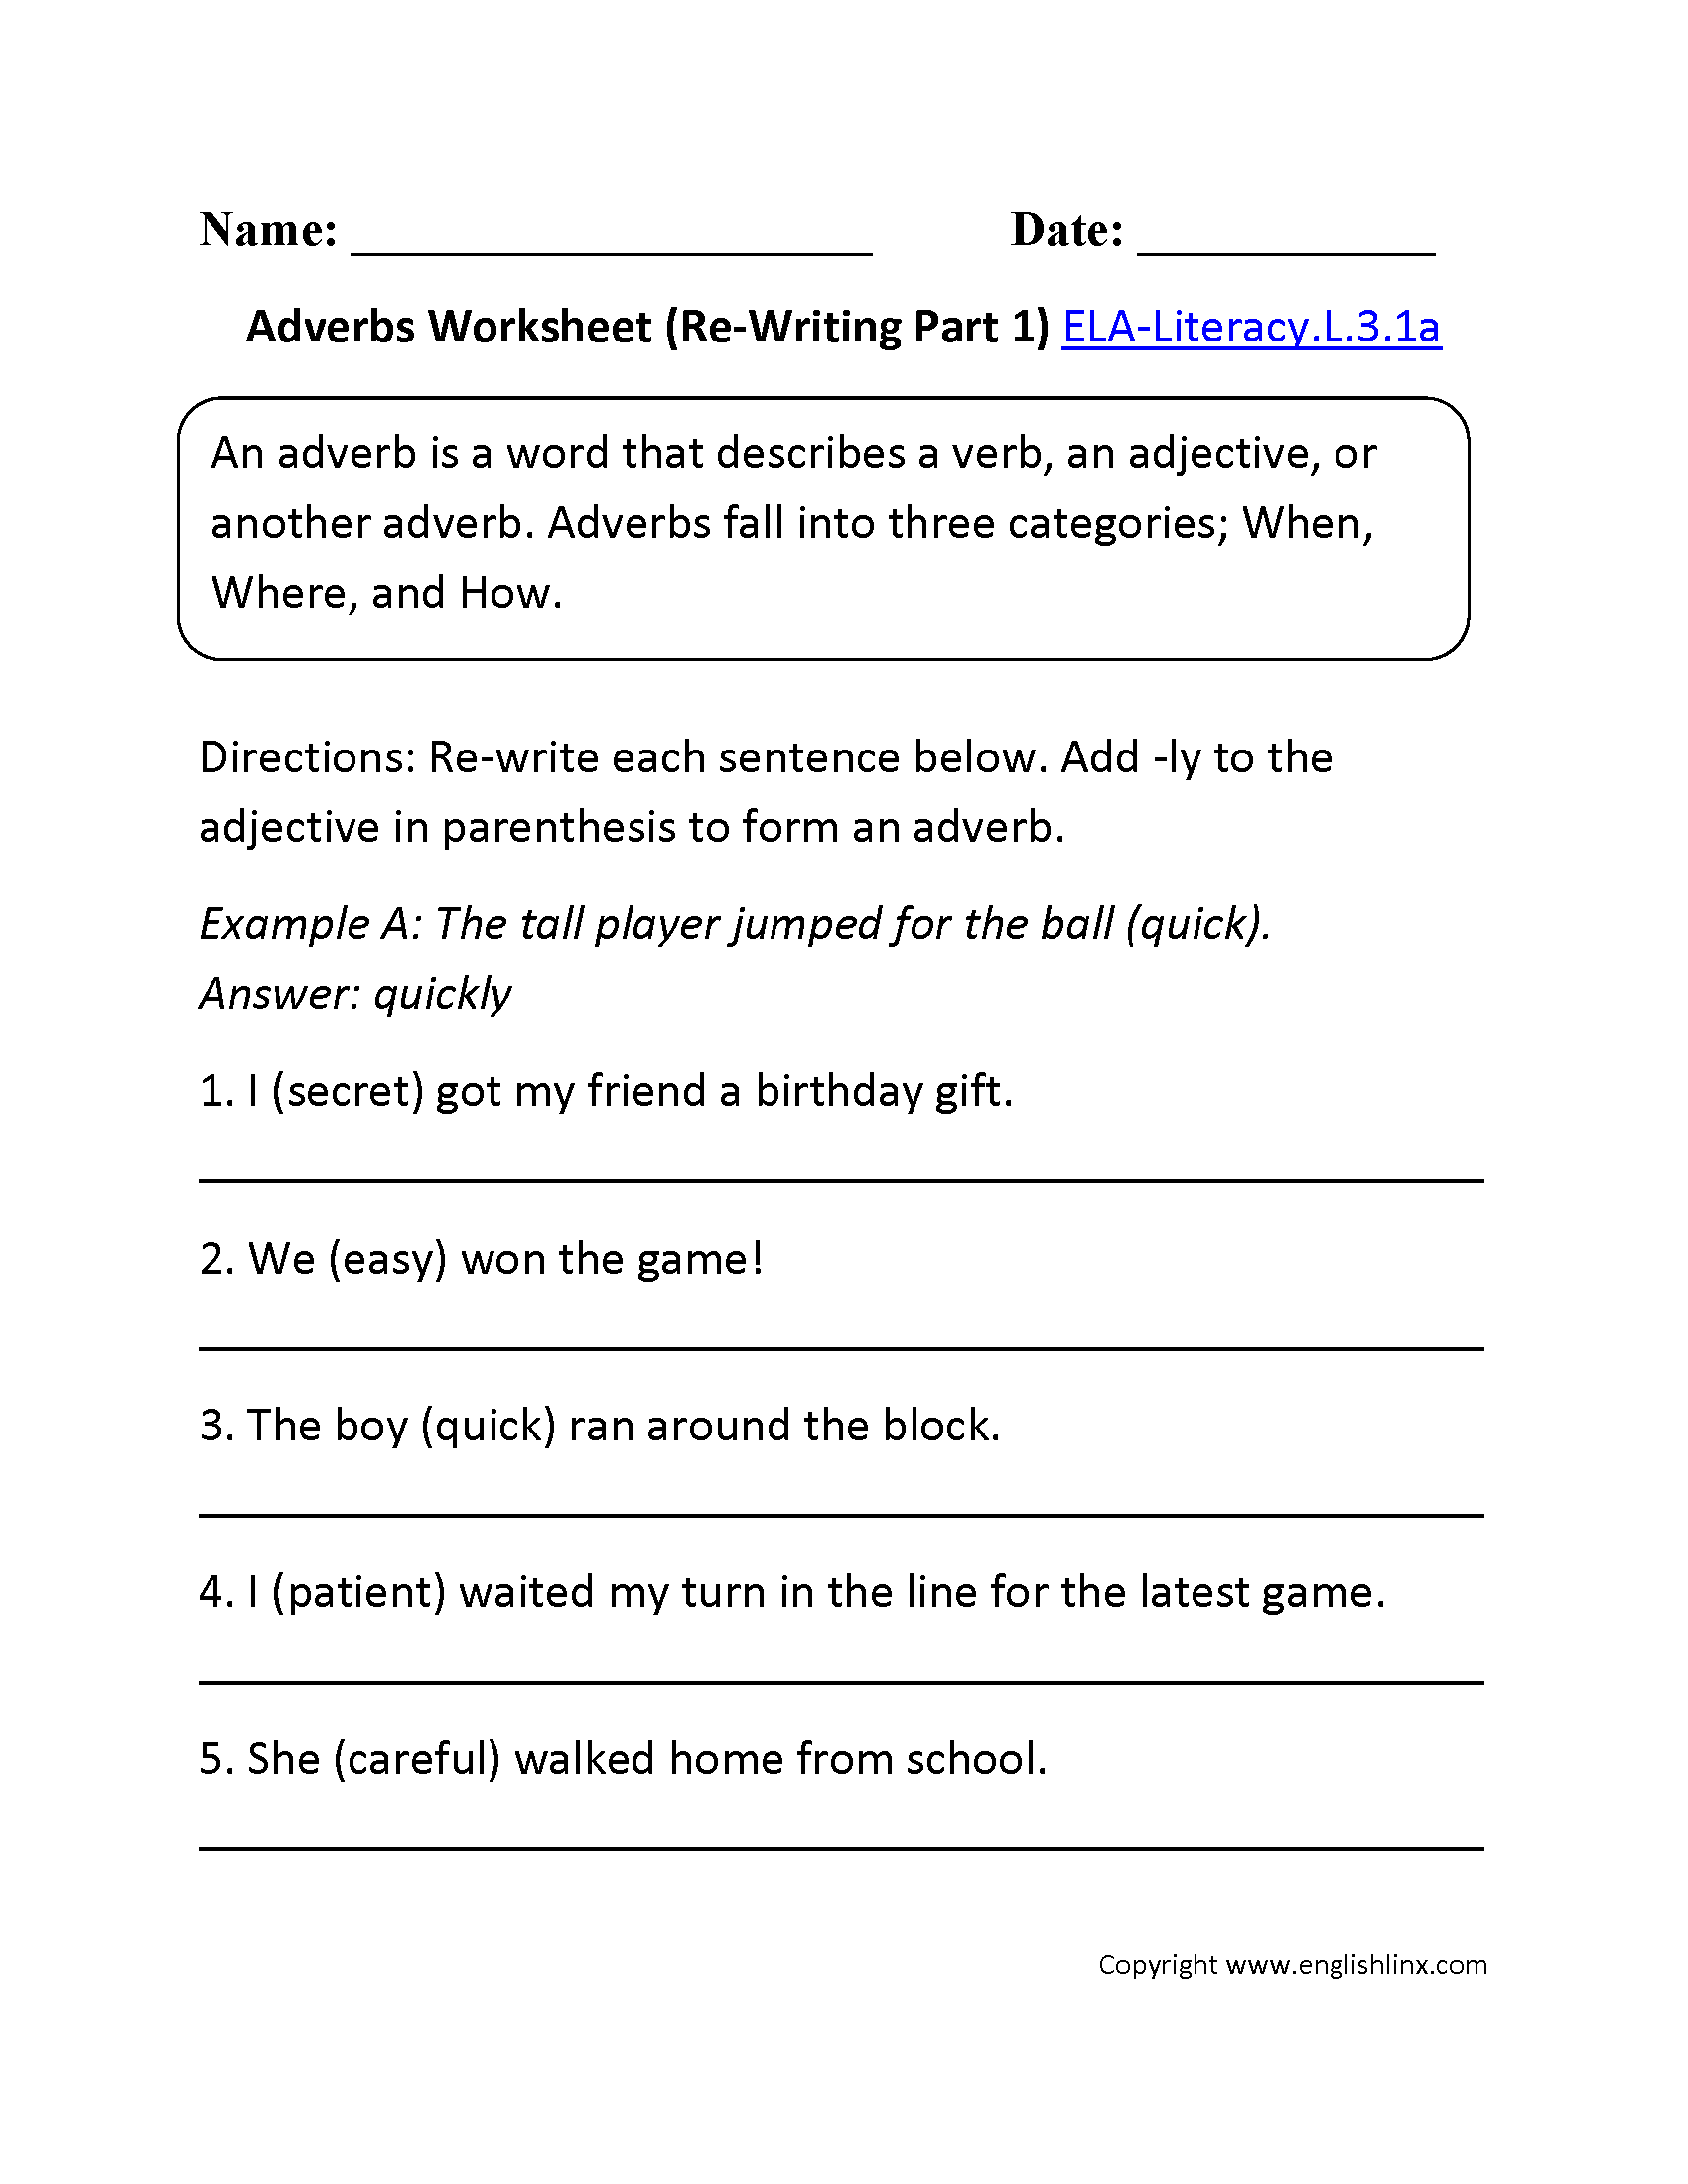 Adverbs Worksheet For 3rd Grade